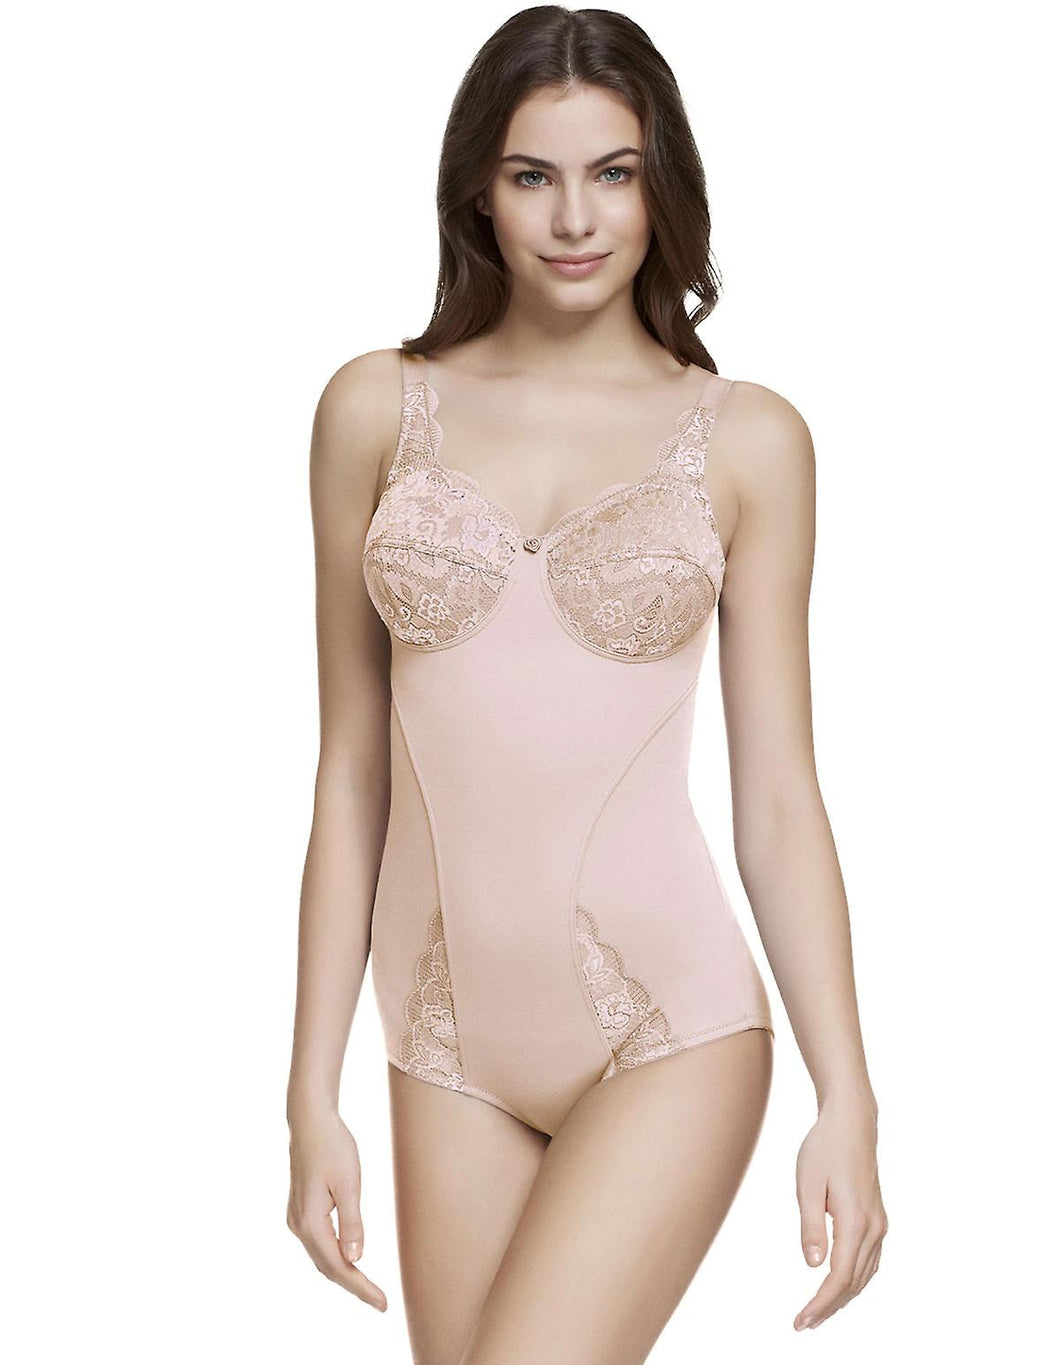 SUSA - LATINA WIREFREE BODY SUIT